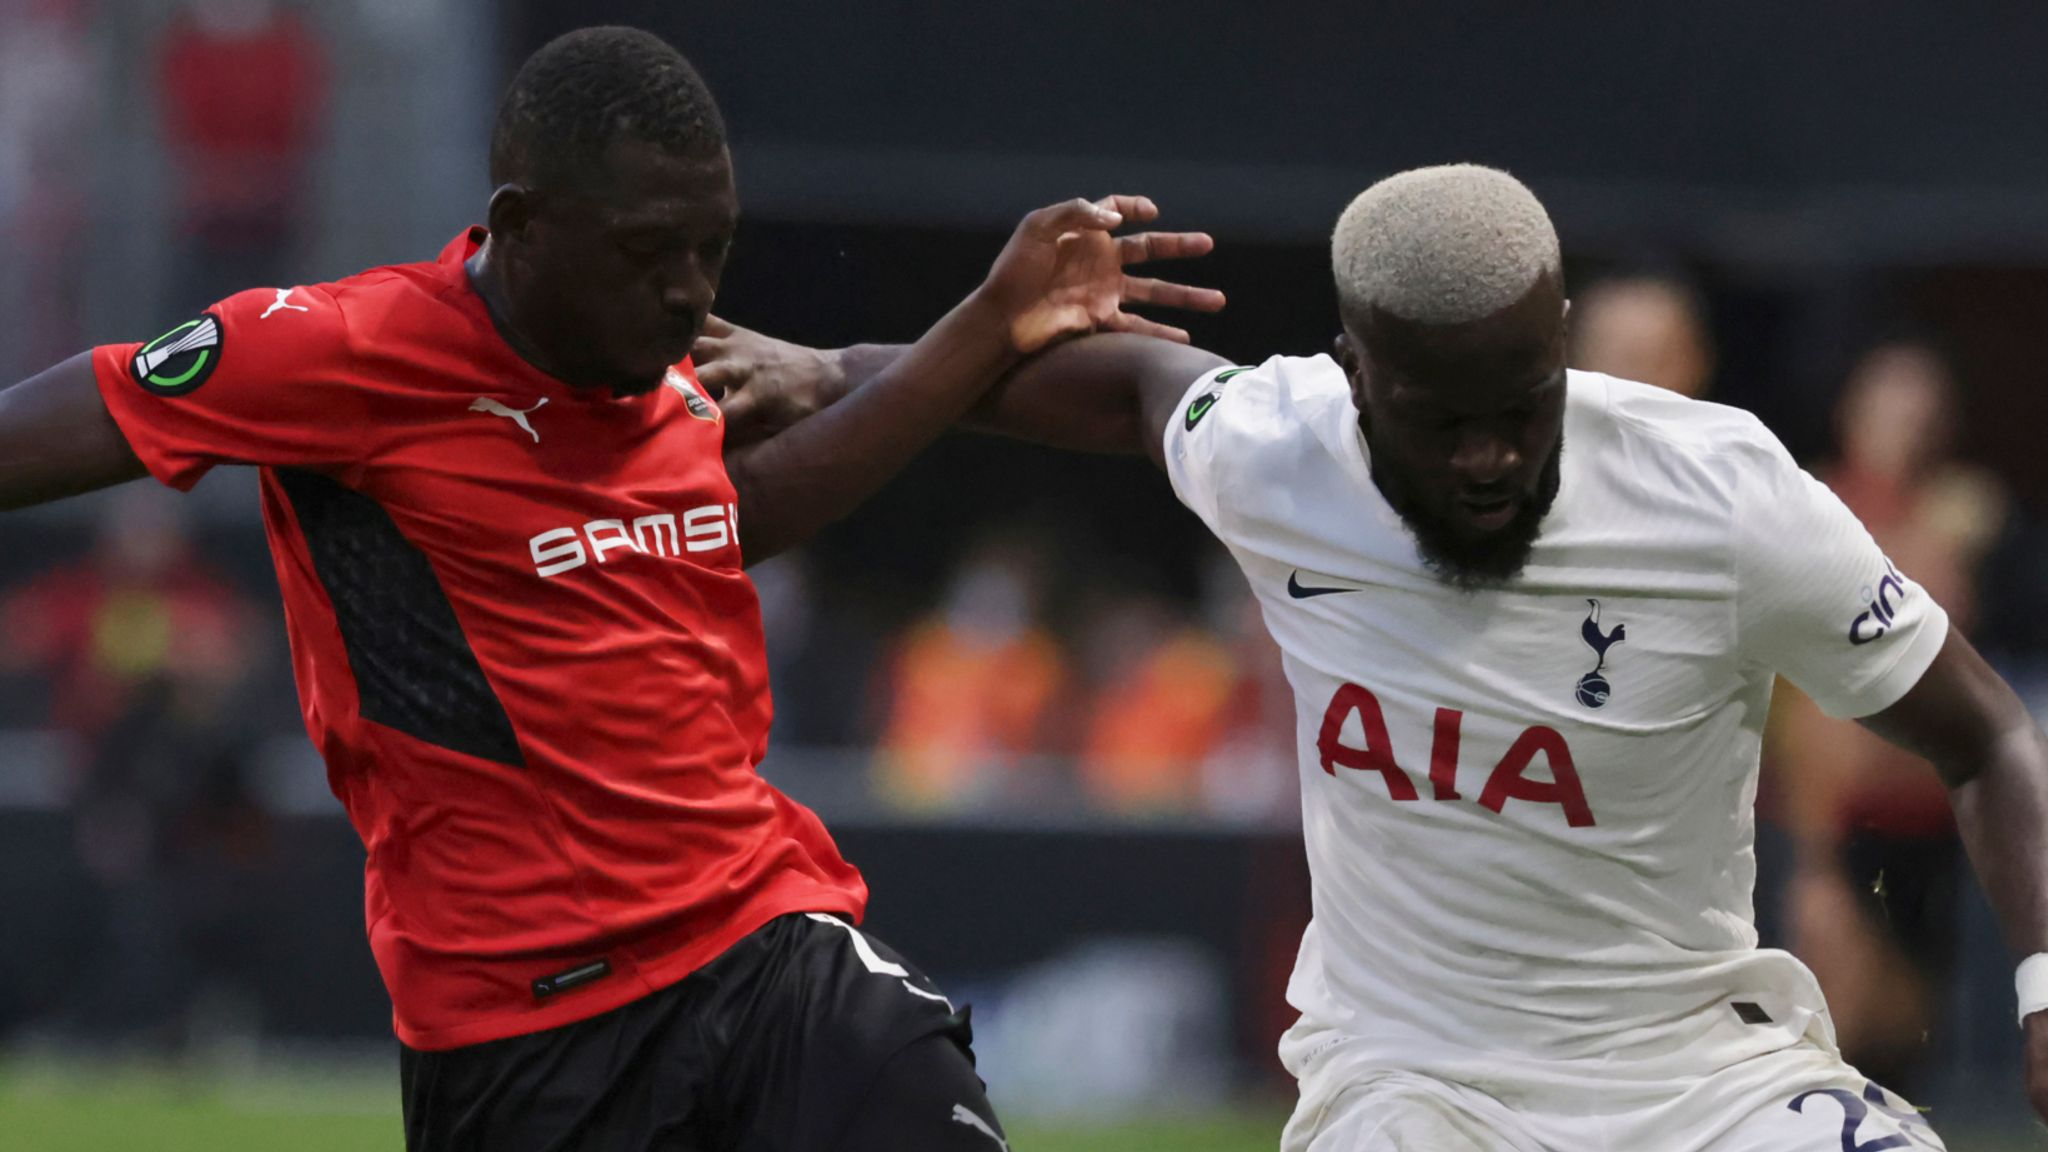 Rennes 2-2 Tottenham: Pierre-Emile Hojbjerg salvages draw but Spurs lose Steven Bergwijn, Lucas Moura to injury